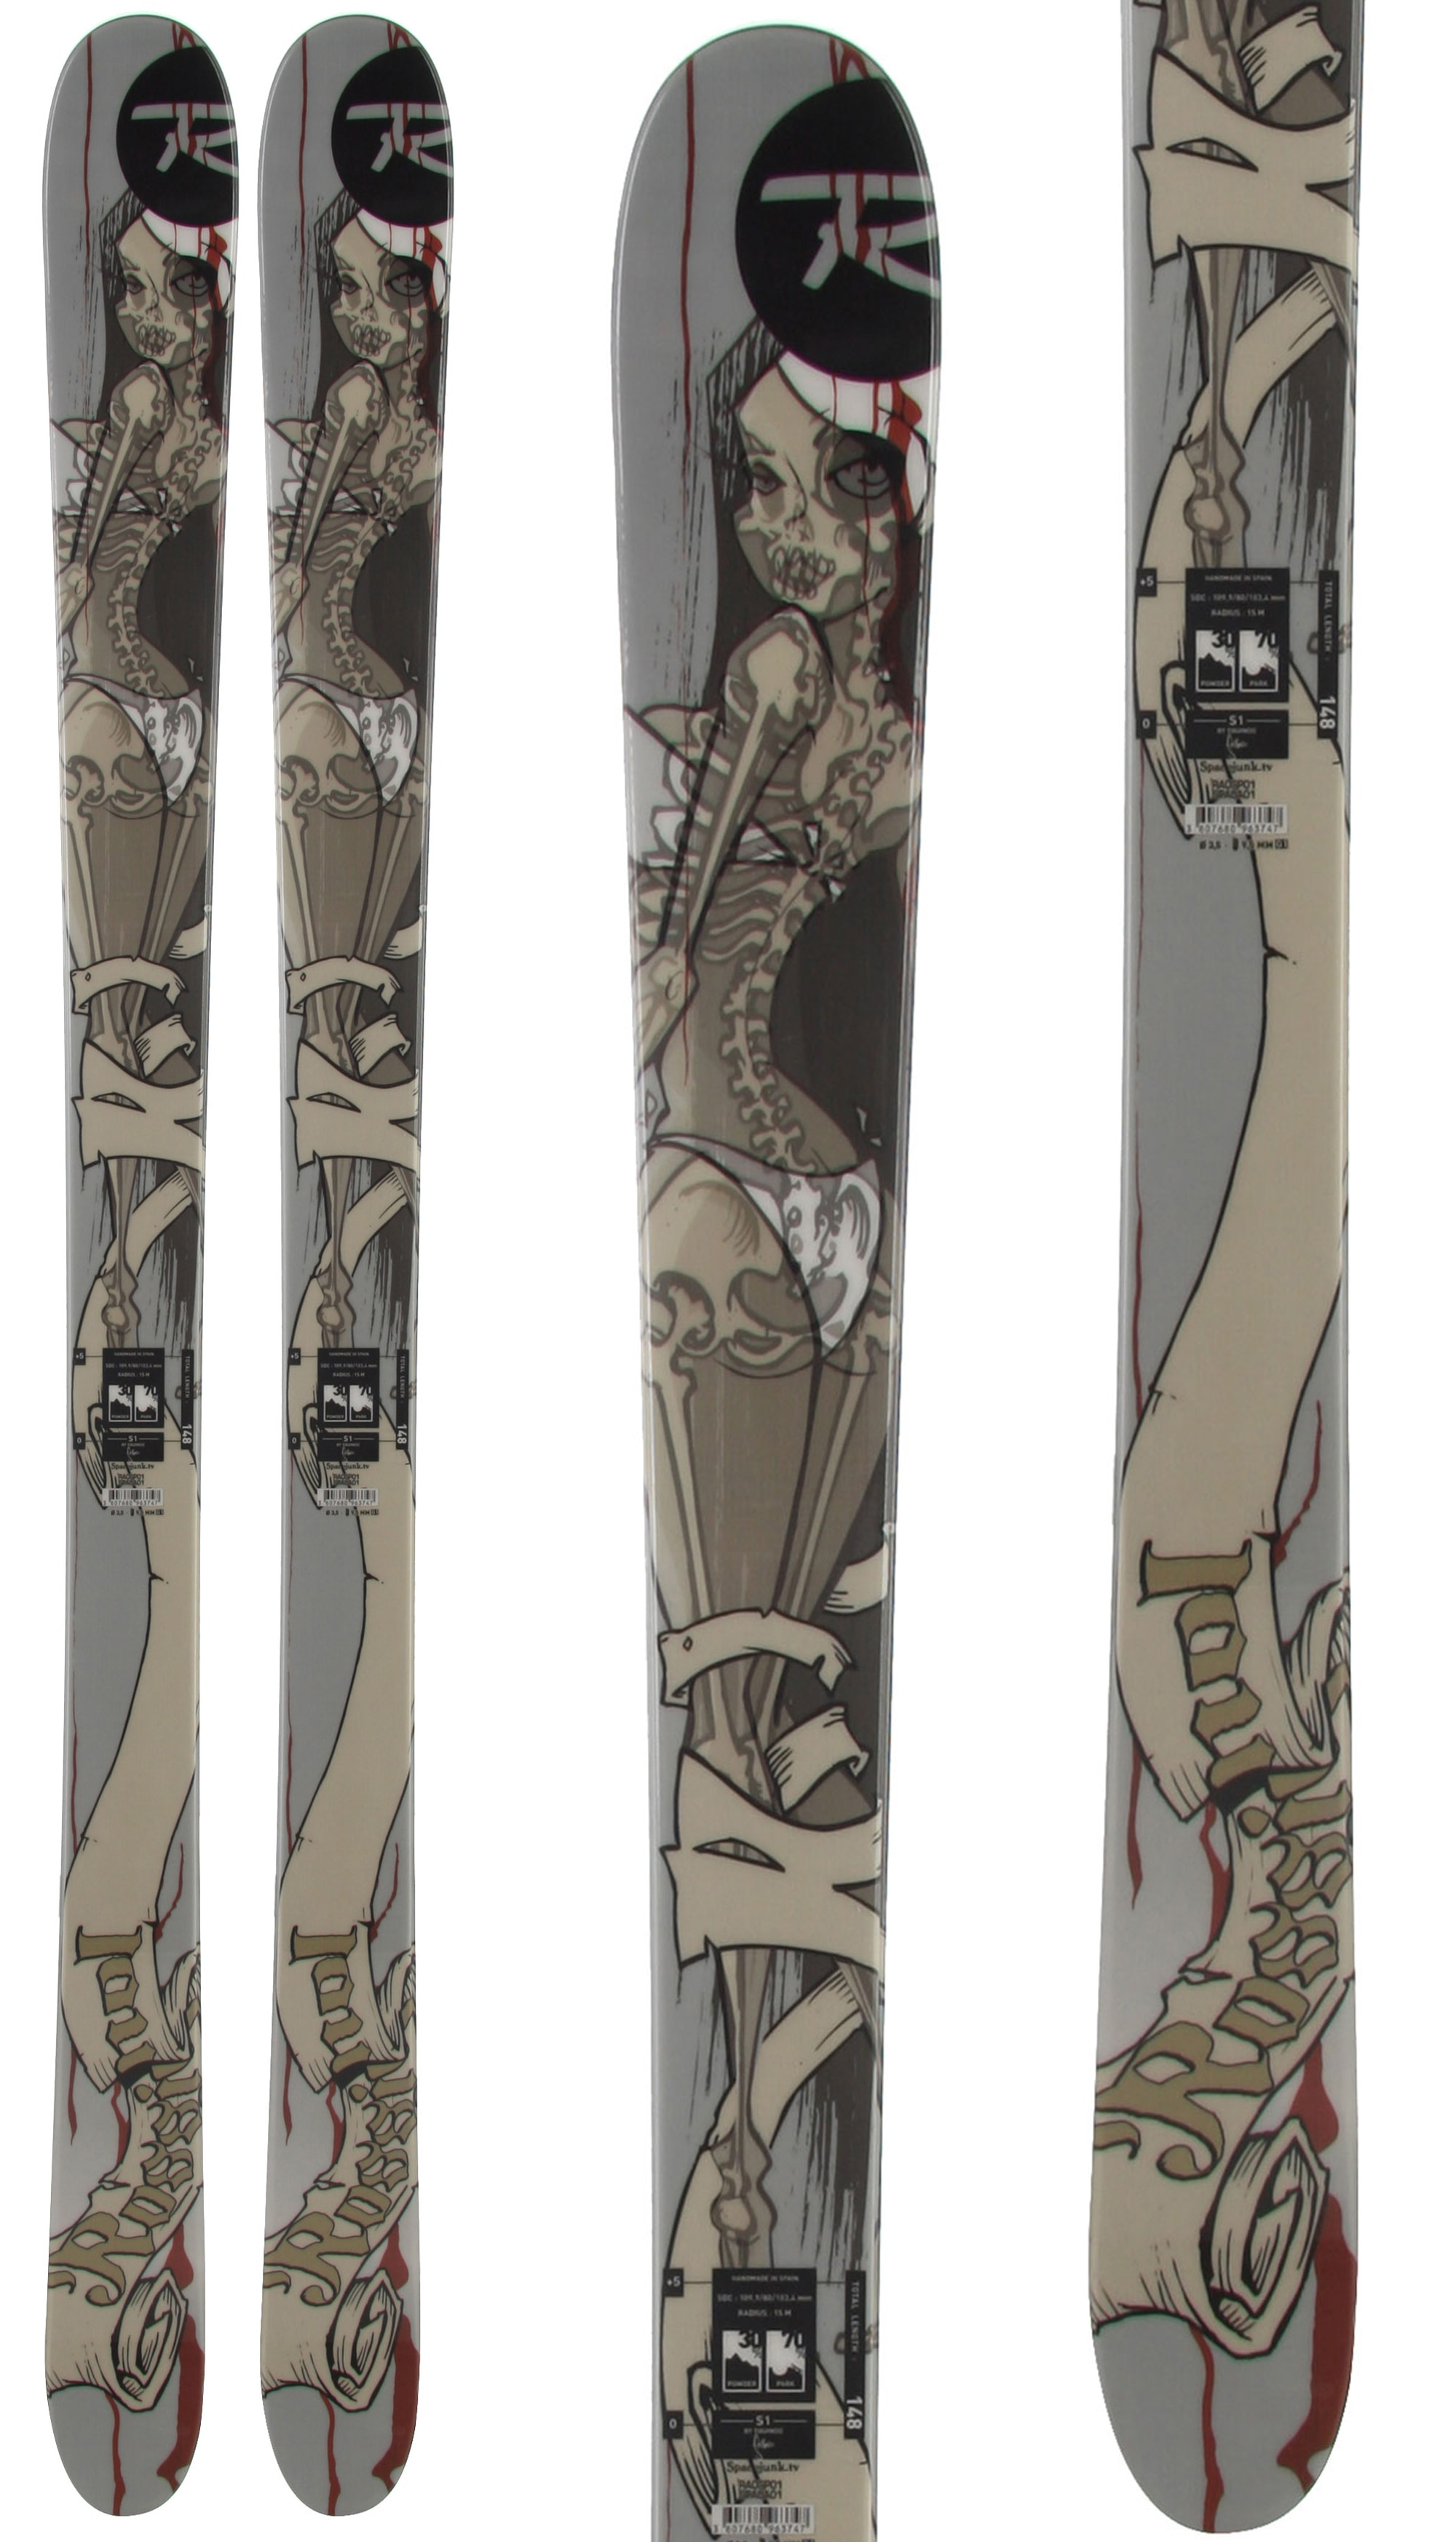 Shop for Rossignol S1 Jib Skis - Kid's